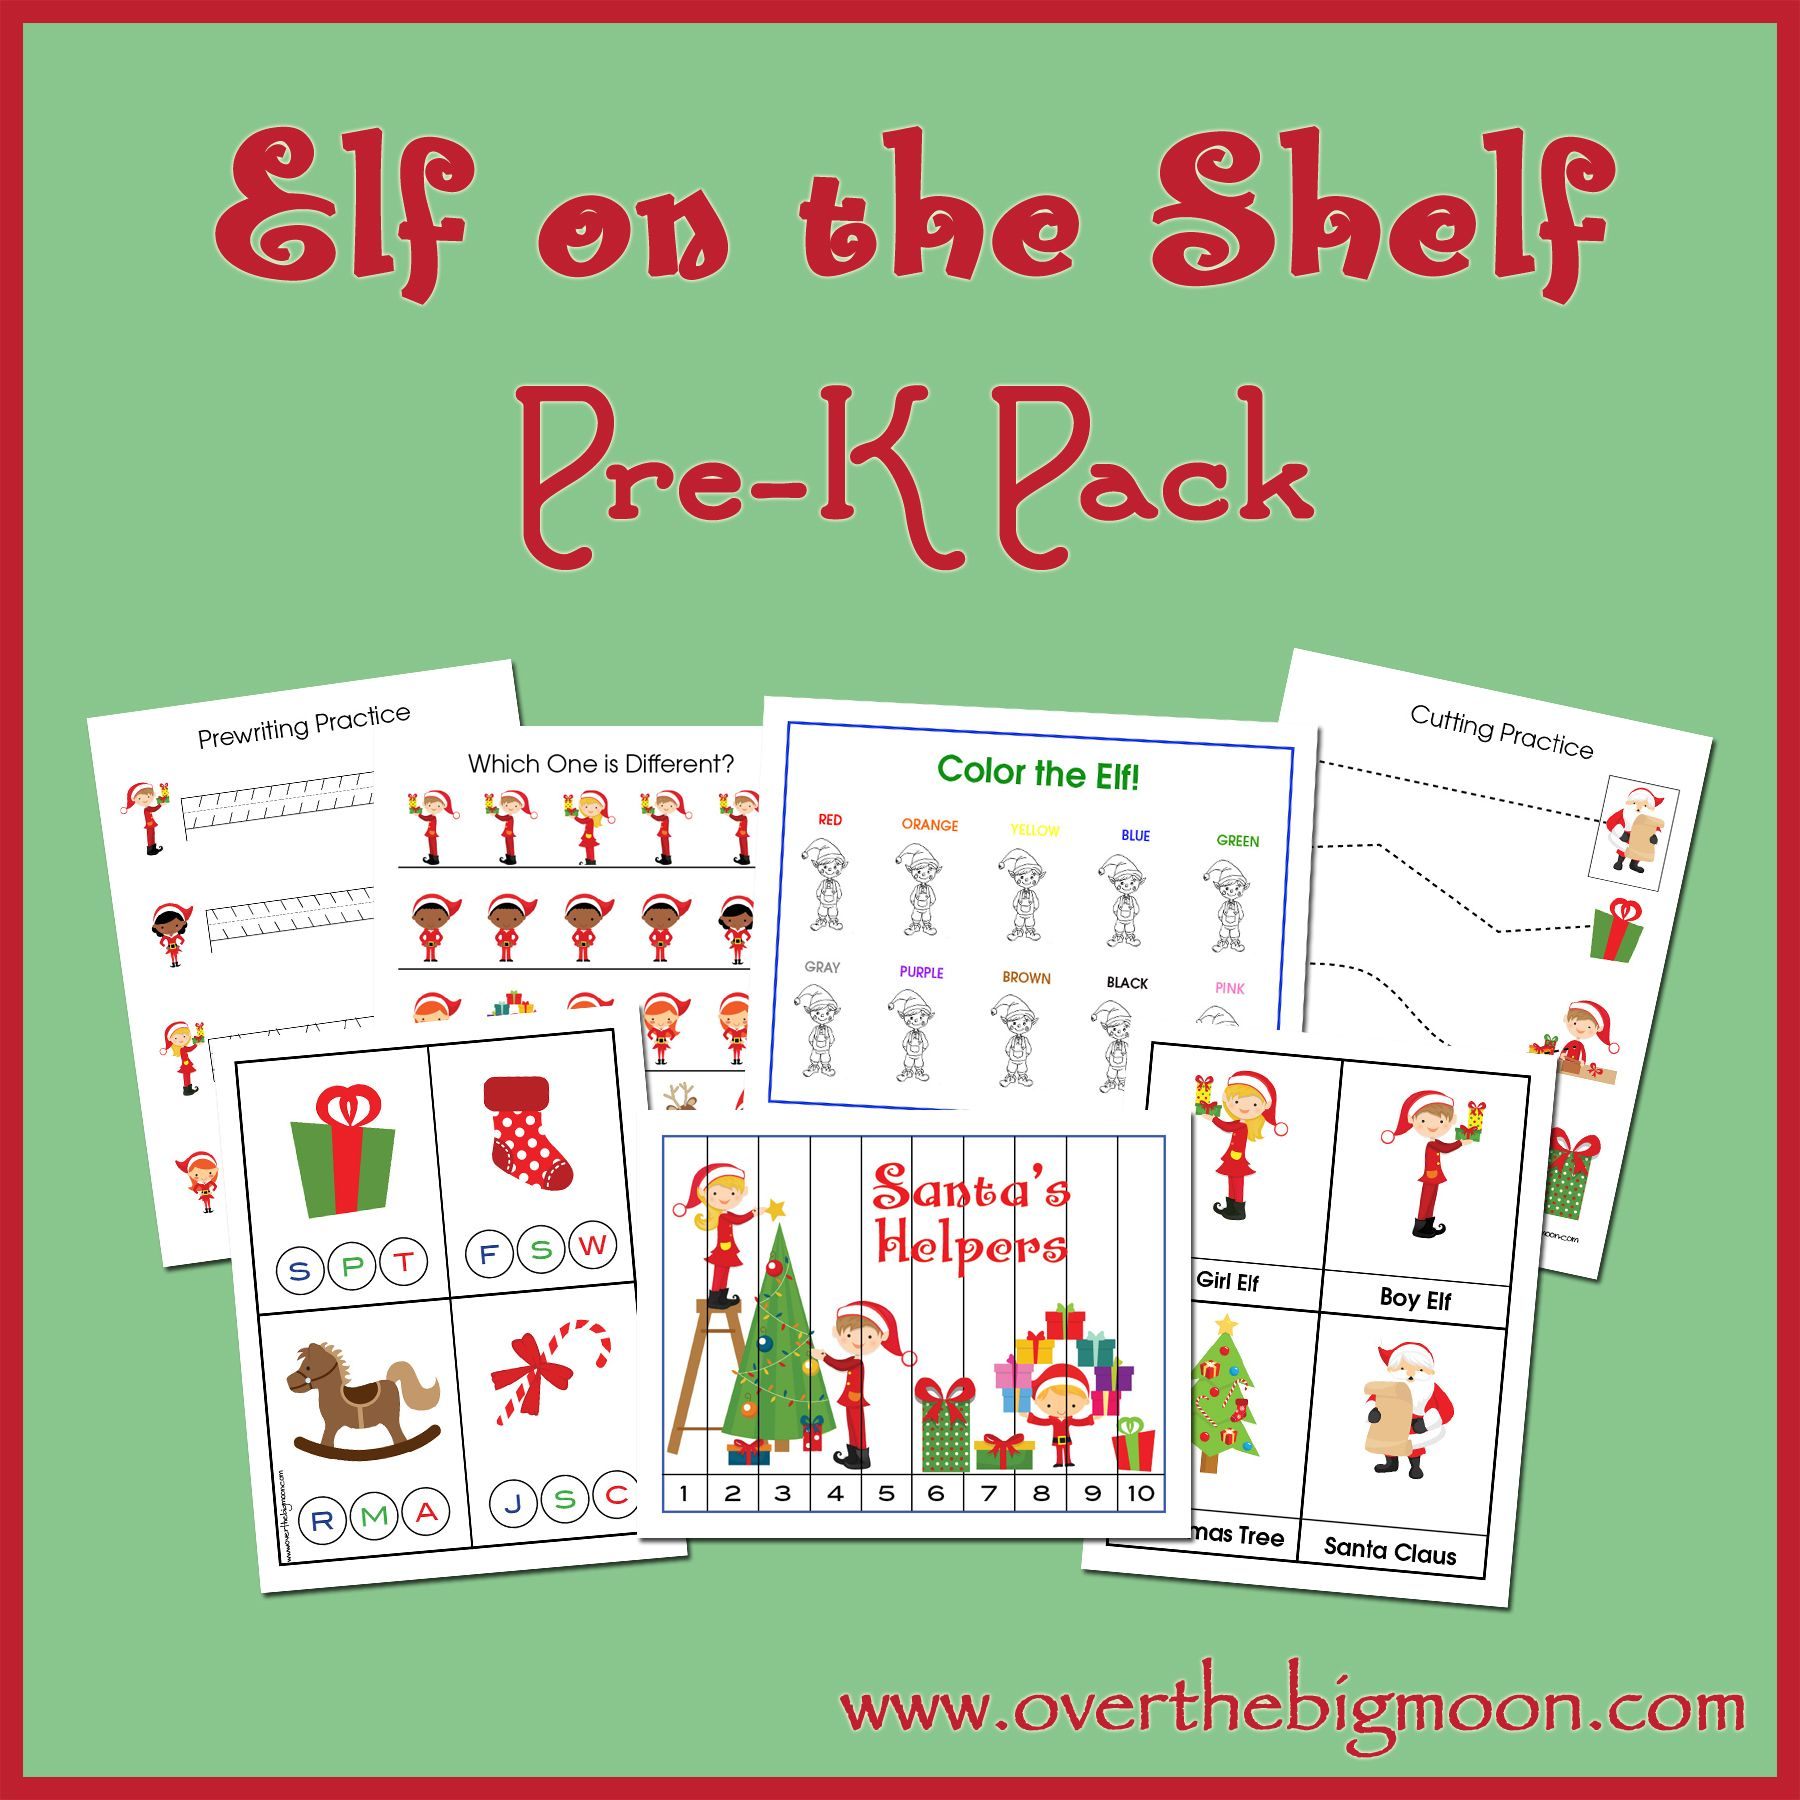 Free Elf On The Shelf Pre K Pack In This Pre K Pack